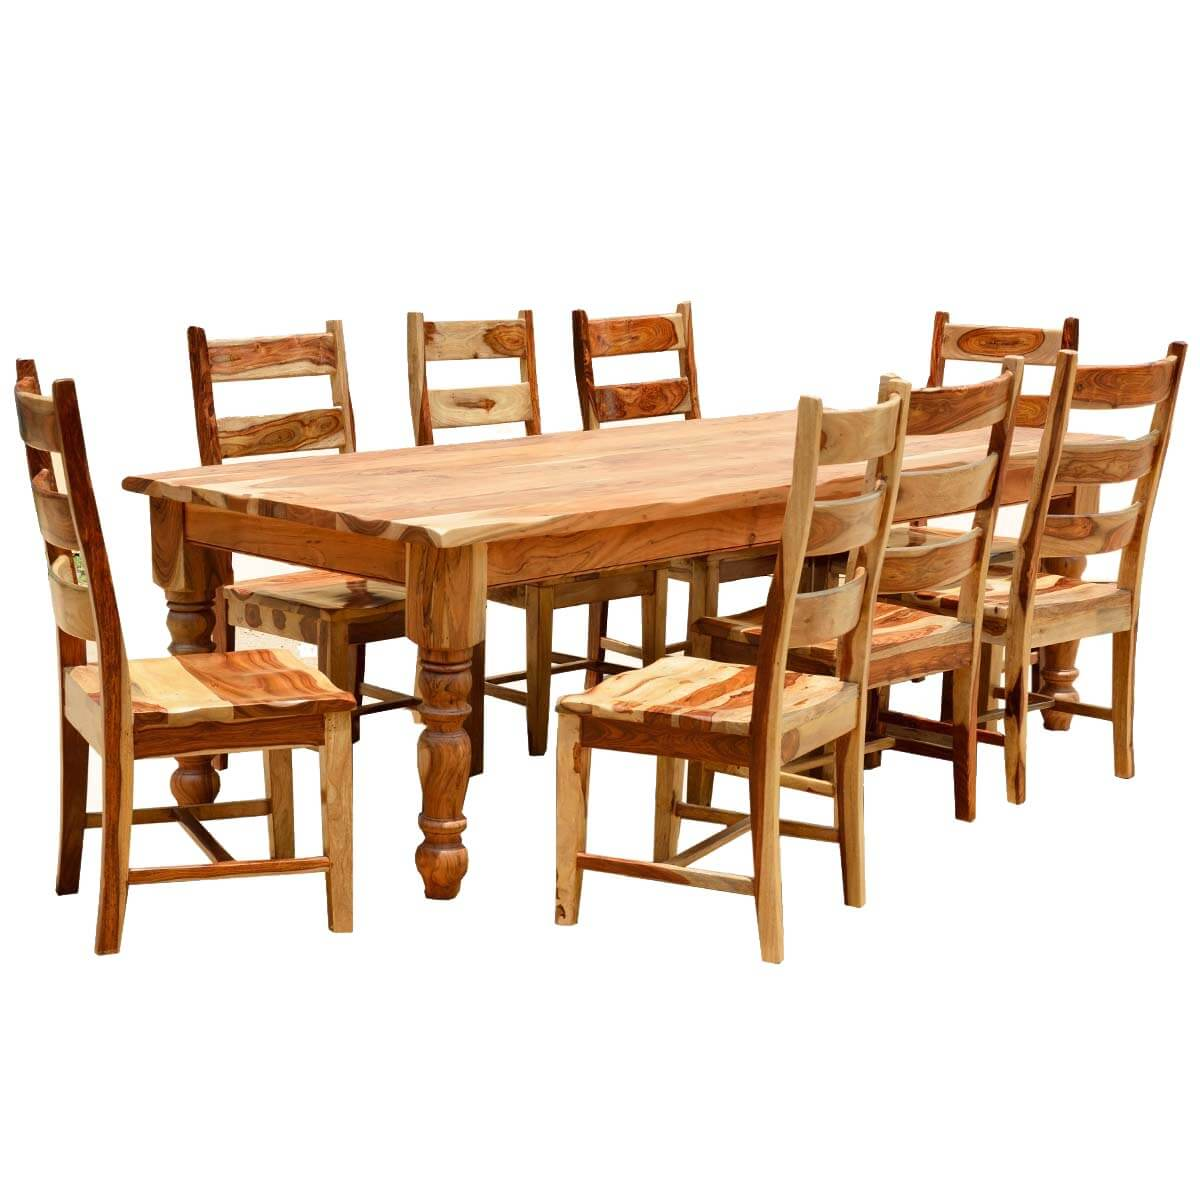 Rustic solid wood farmhouse dining room table chair set for Solid wood dining room table and chairs